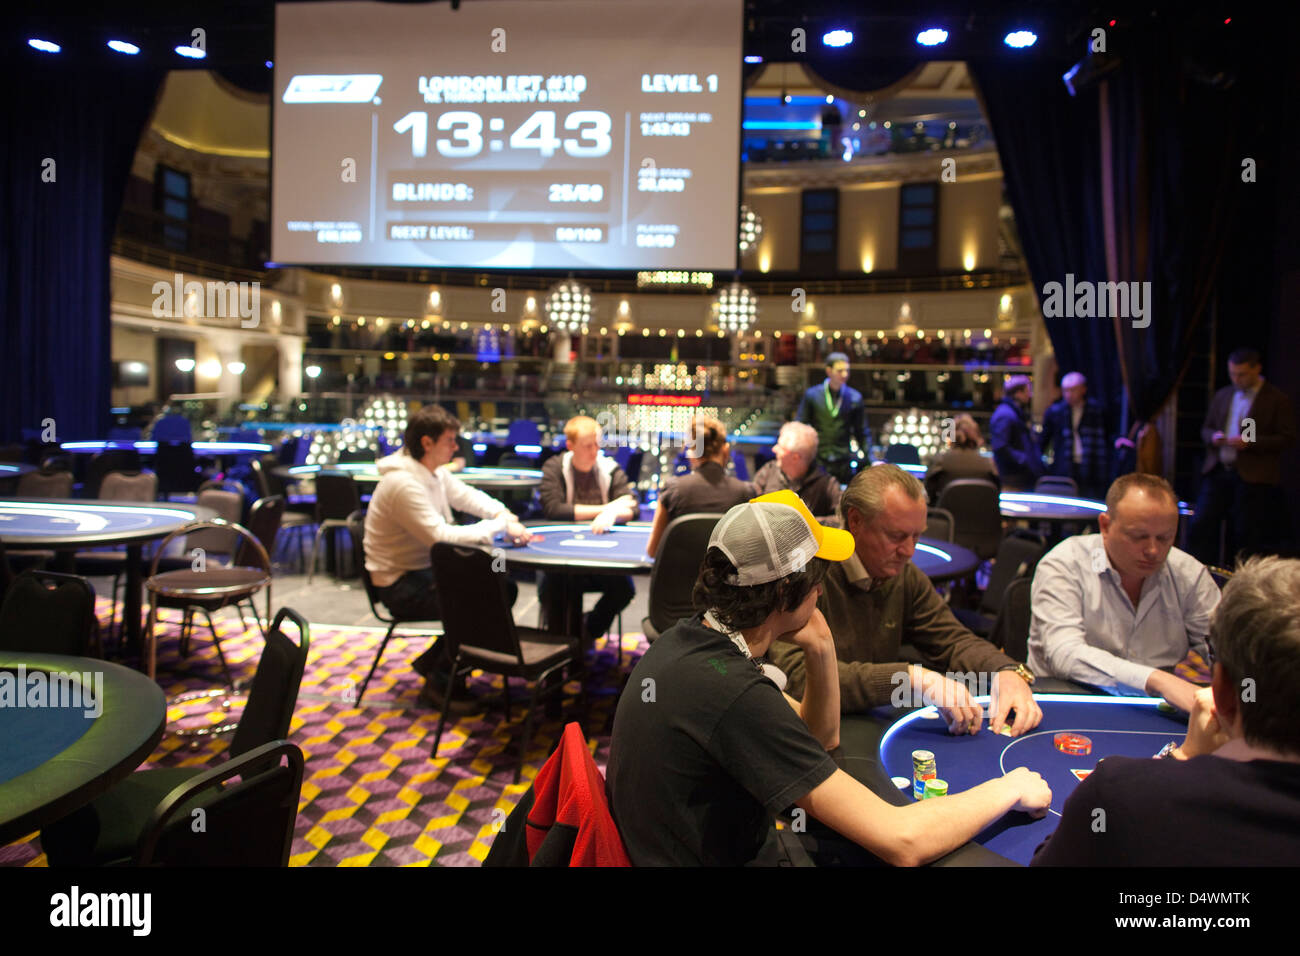 poker casino london